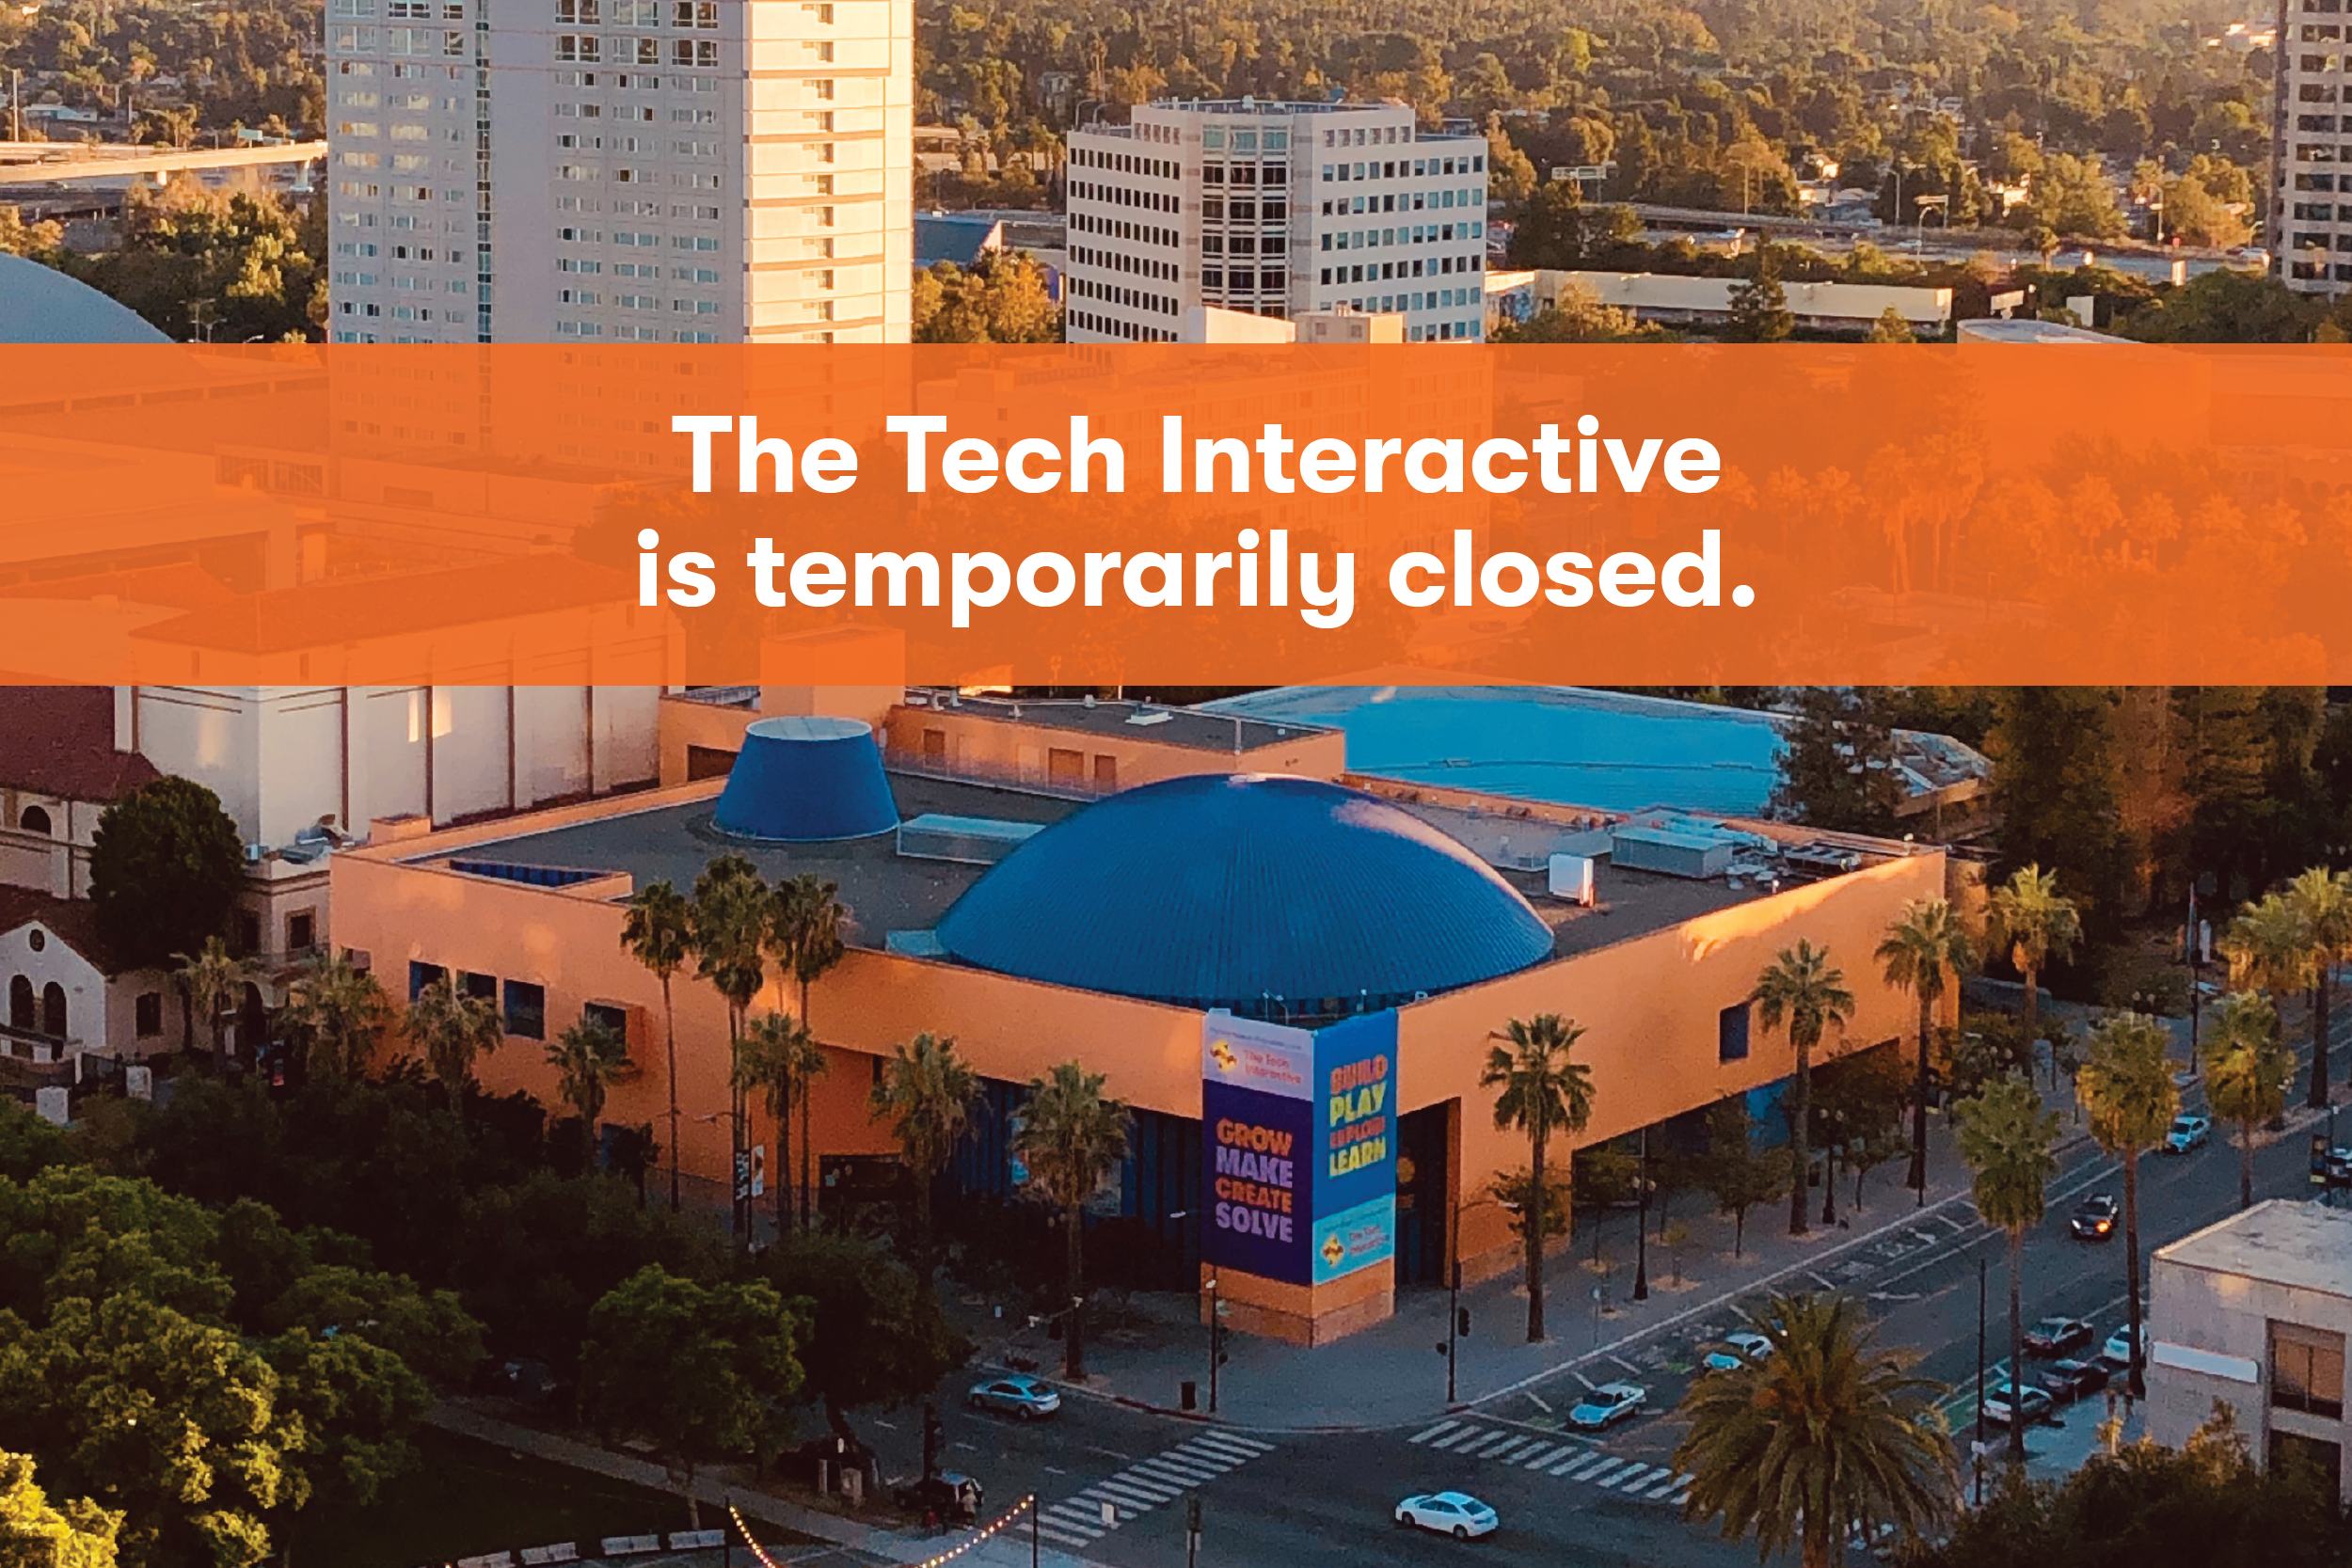 The Tech Interactive is temporarily closed.